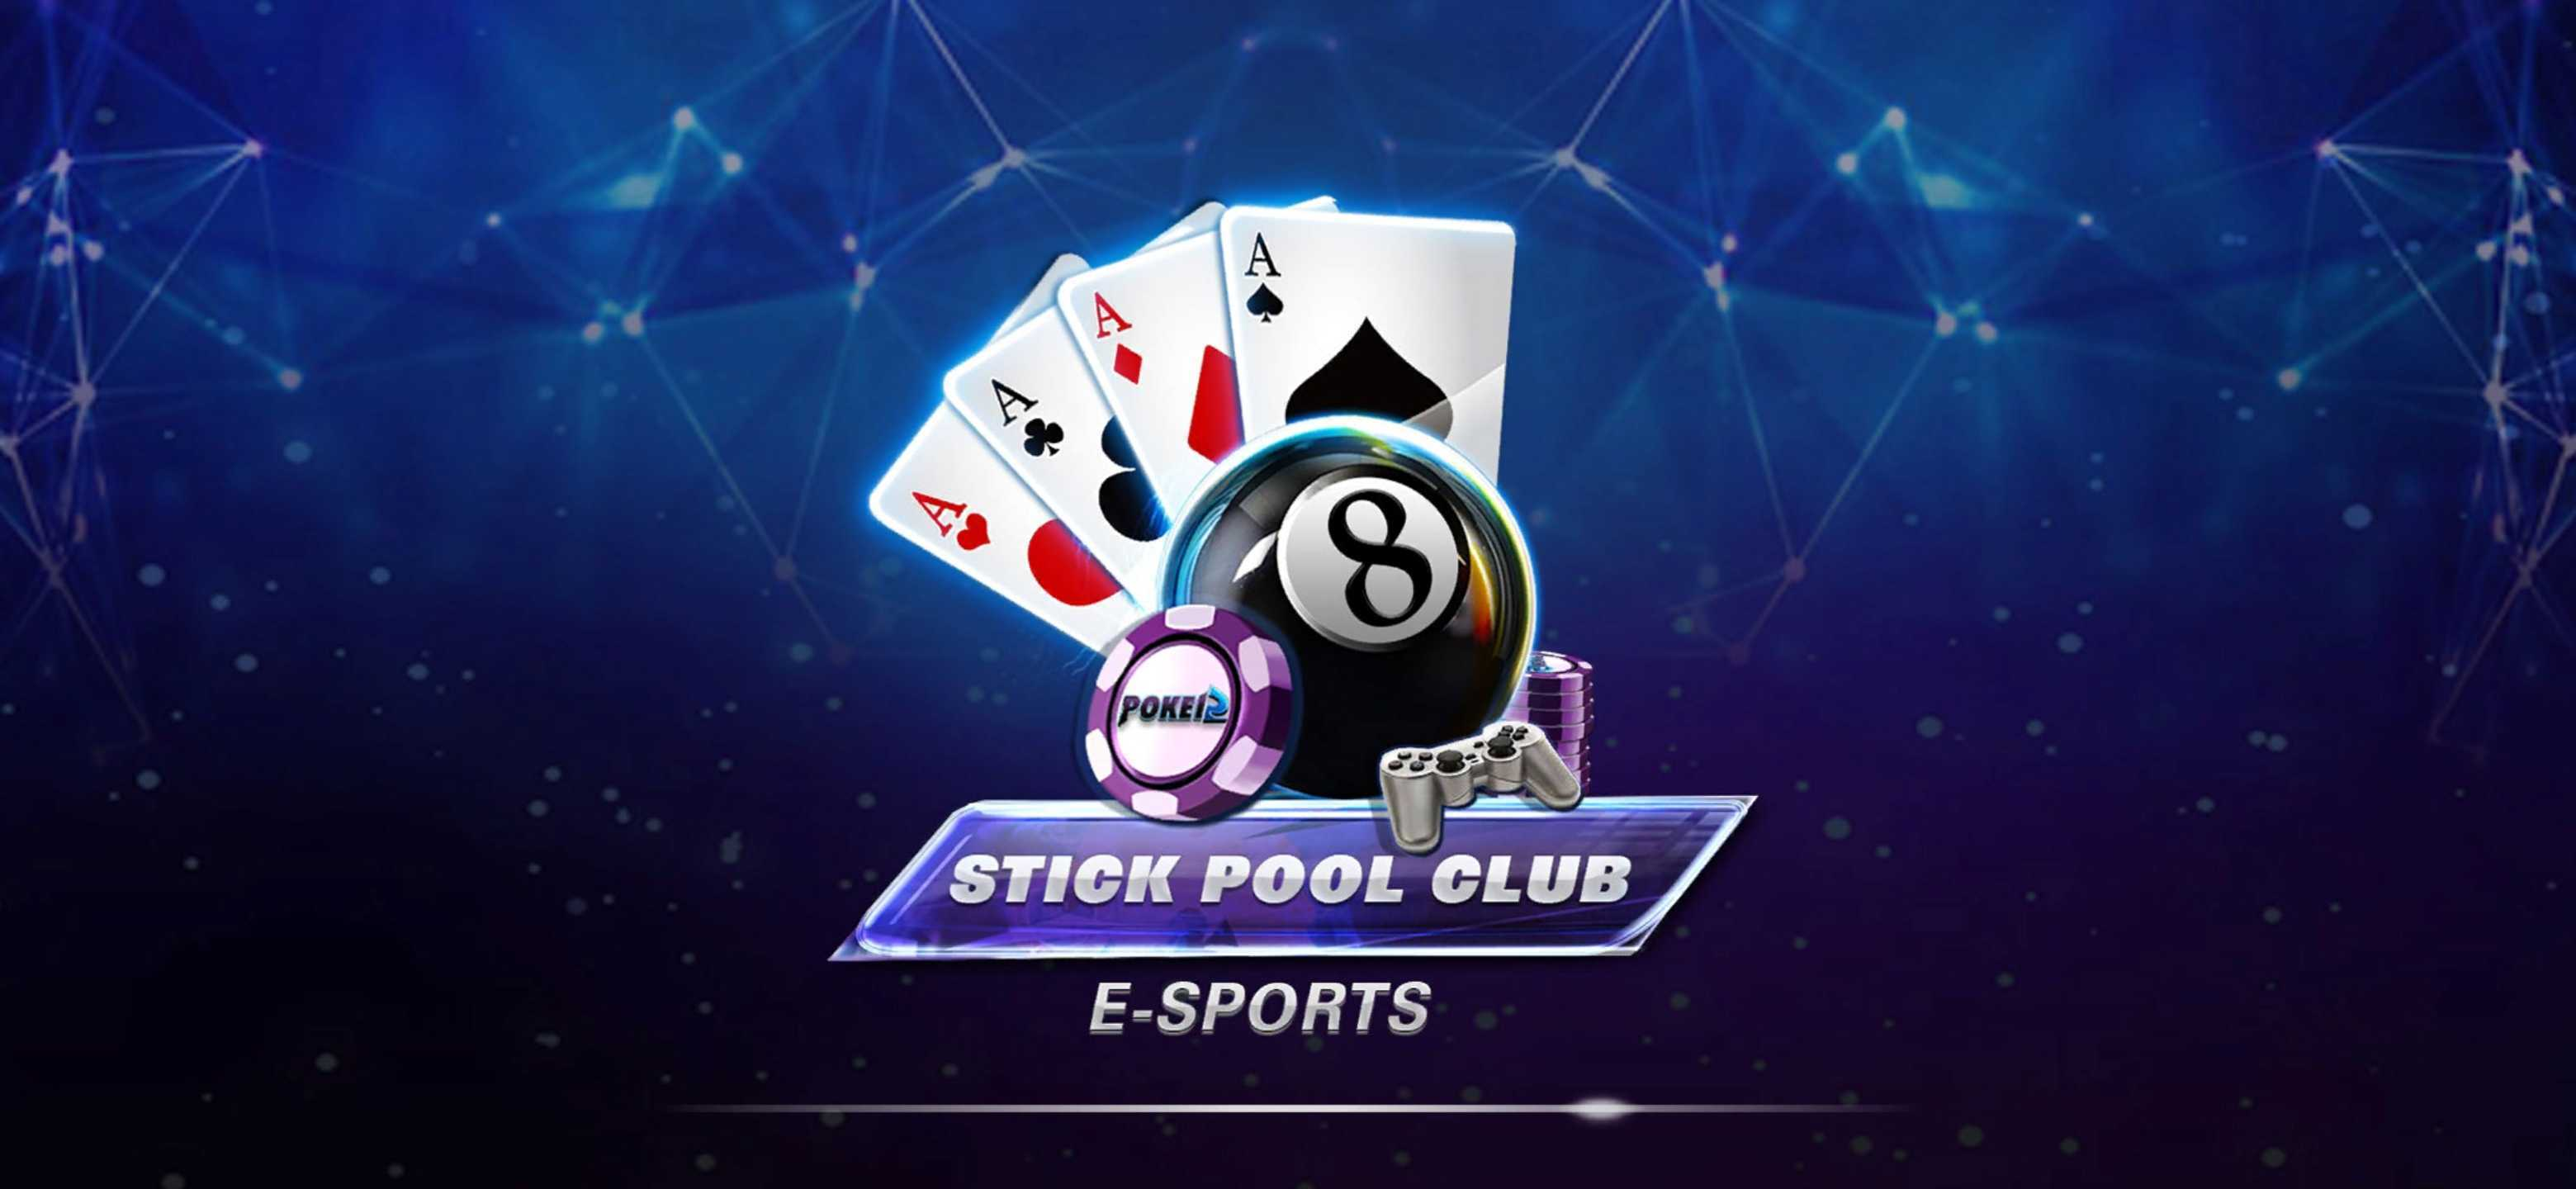 India's Stick Pool Club Doubles User Engagement with the Launch of Live Dealer Poker